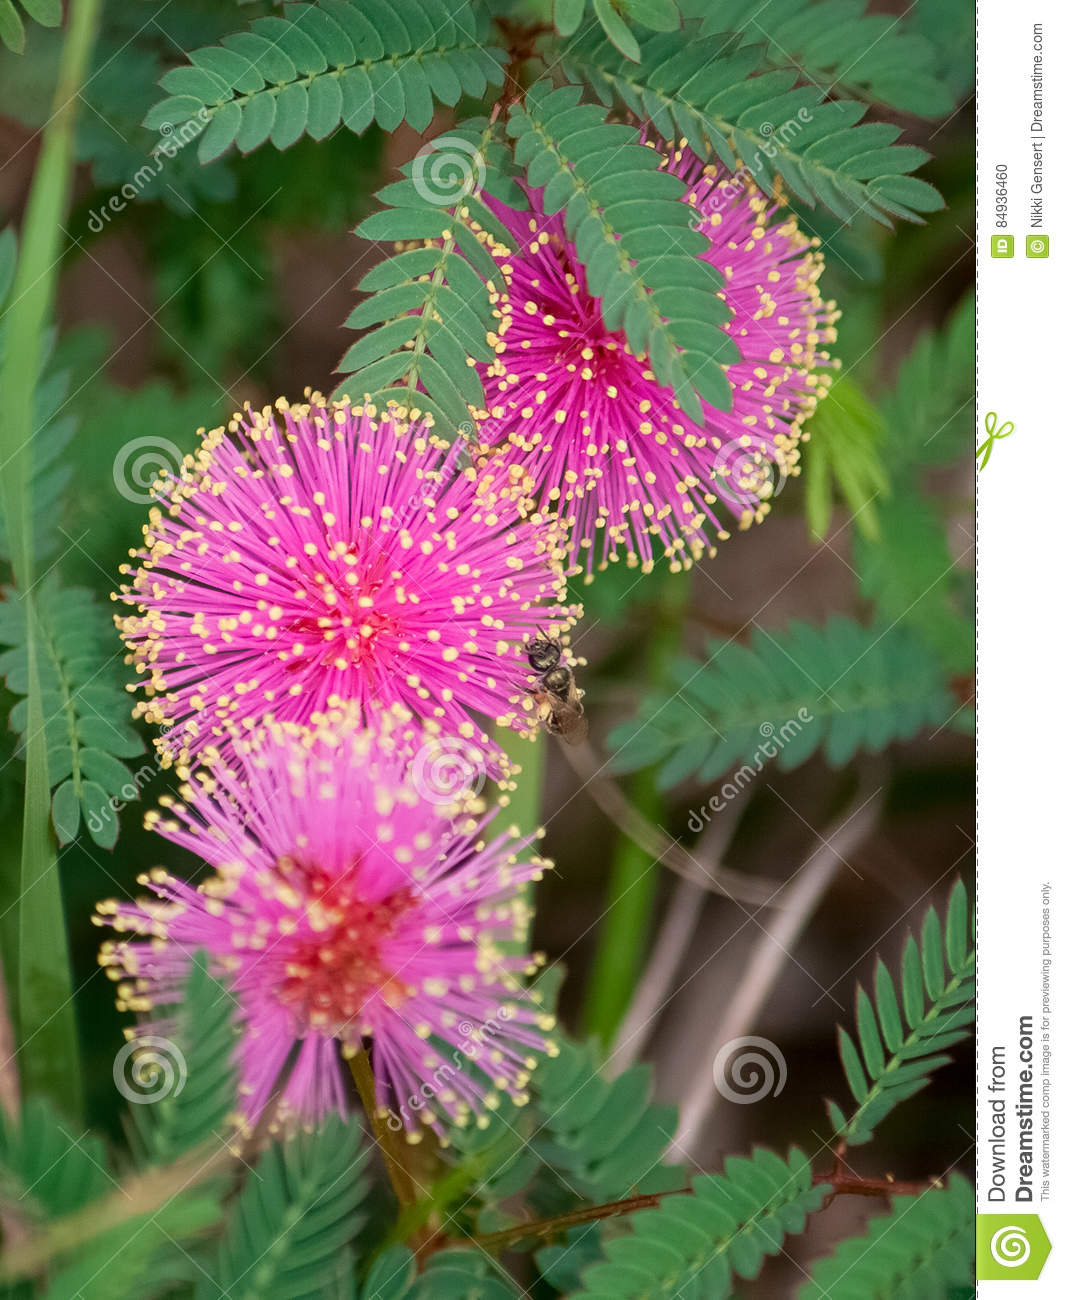 Bright Pink Fluffy Mimosa Tree Flowers Stock Photo Image Of Mimosa